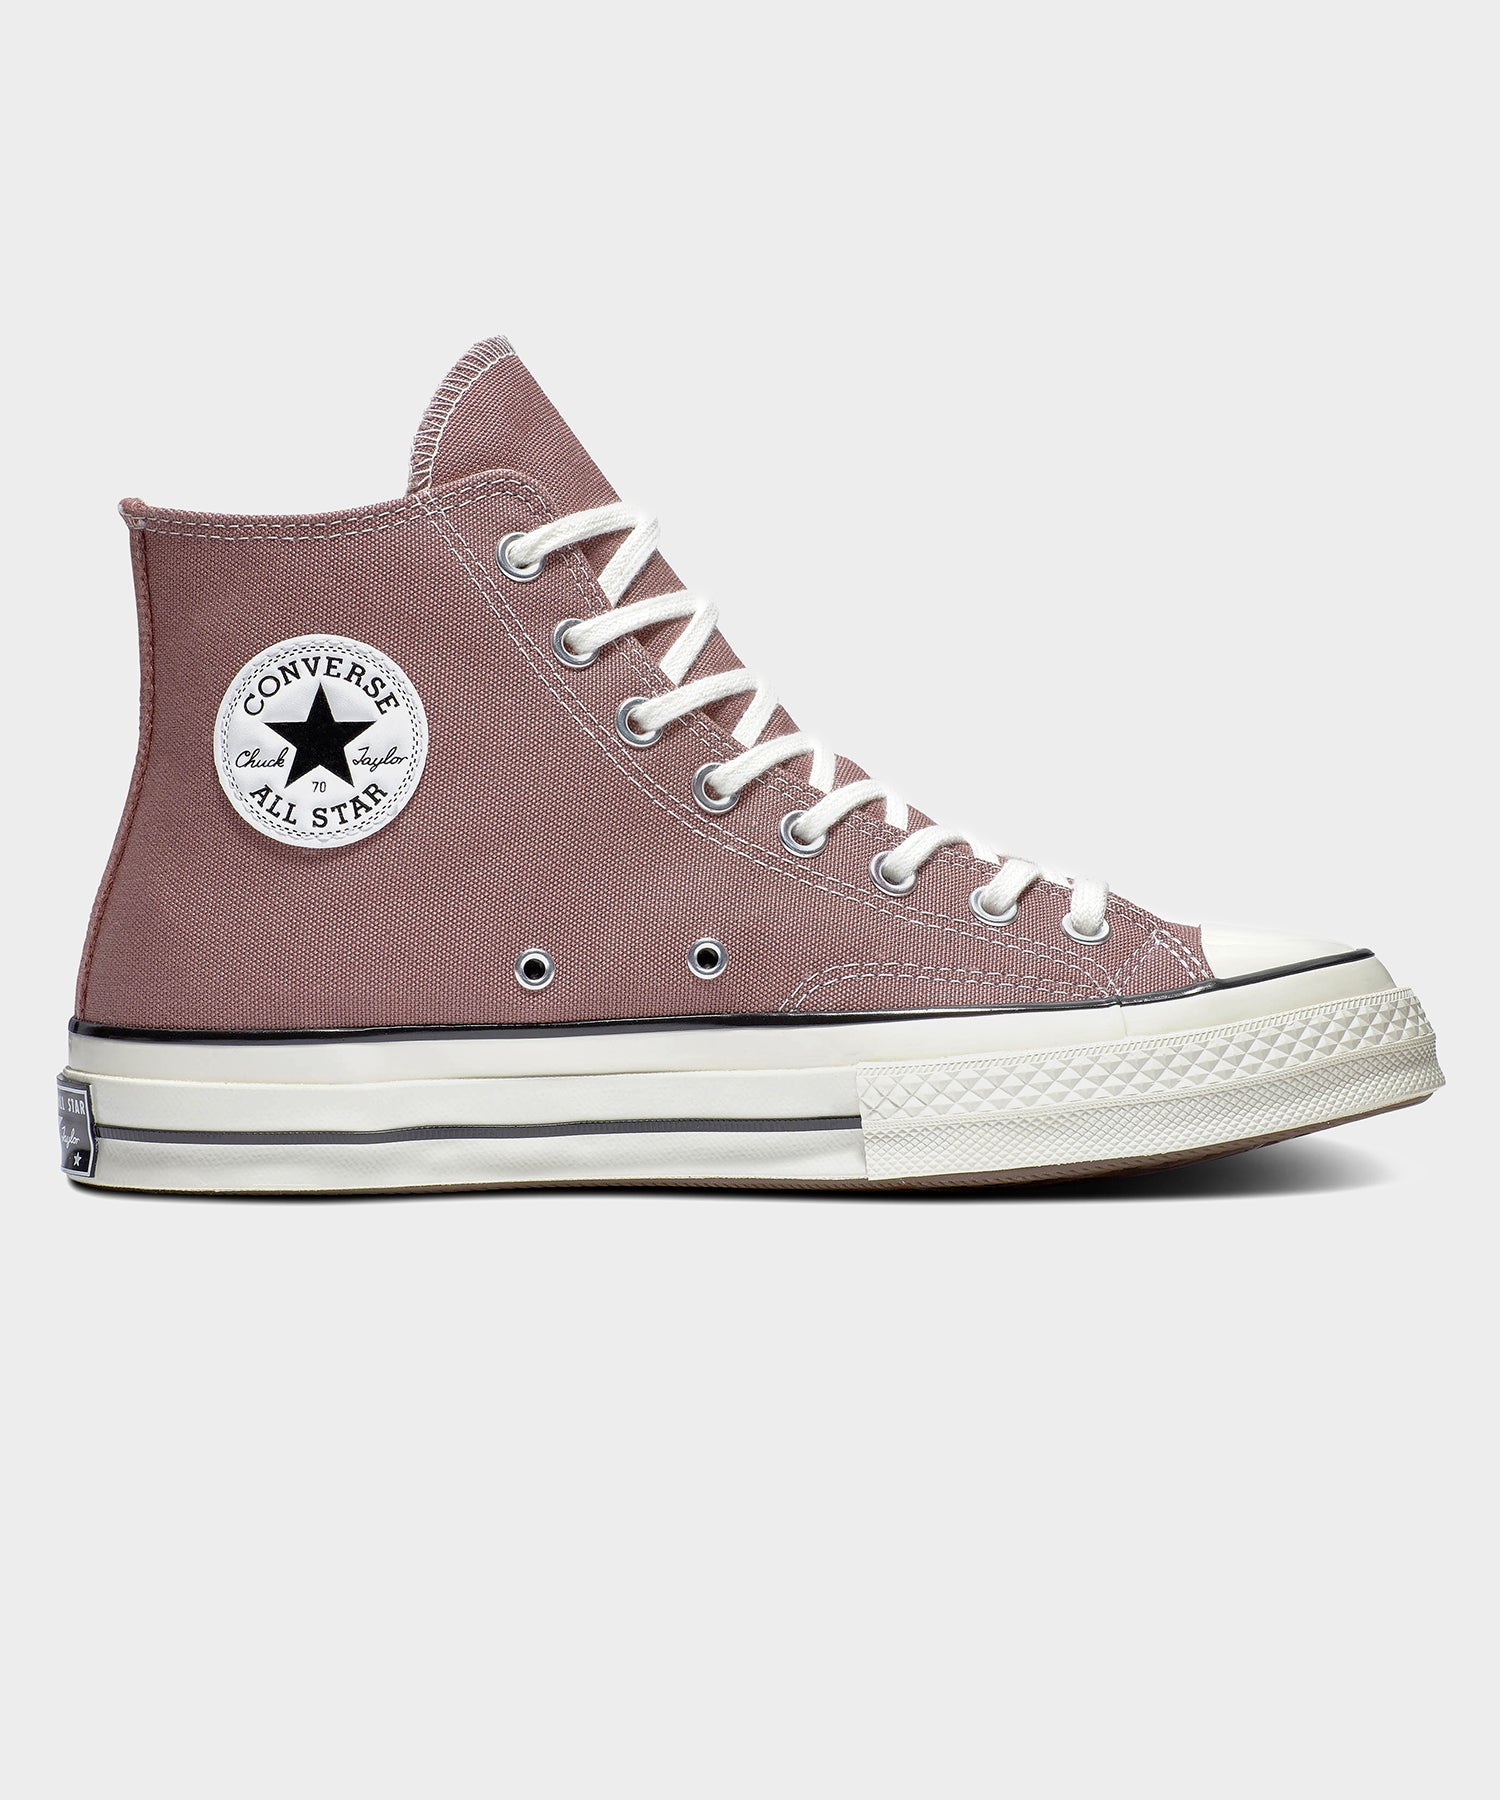 Converse Chuck 70 Hi Organic Canvas in Saddle Tan